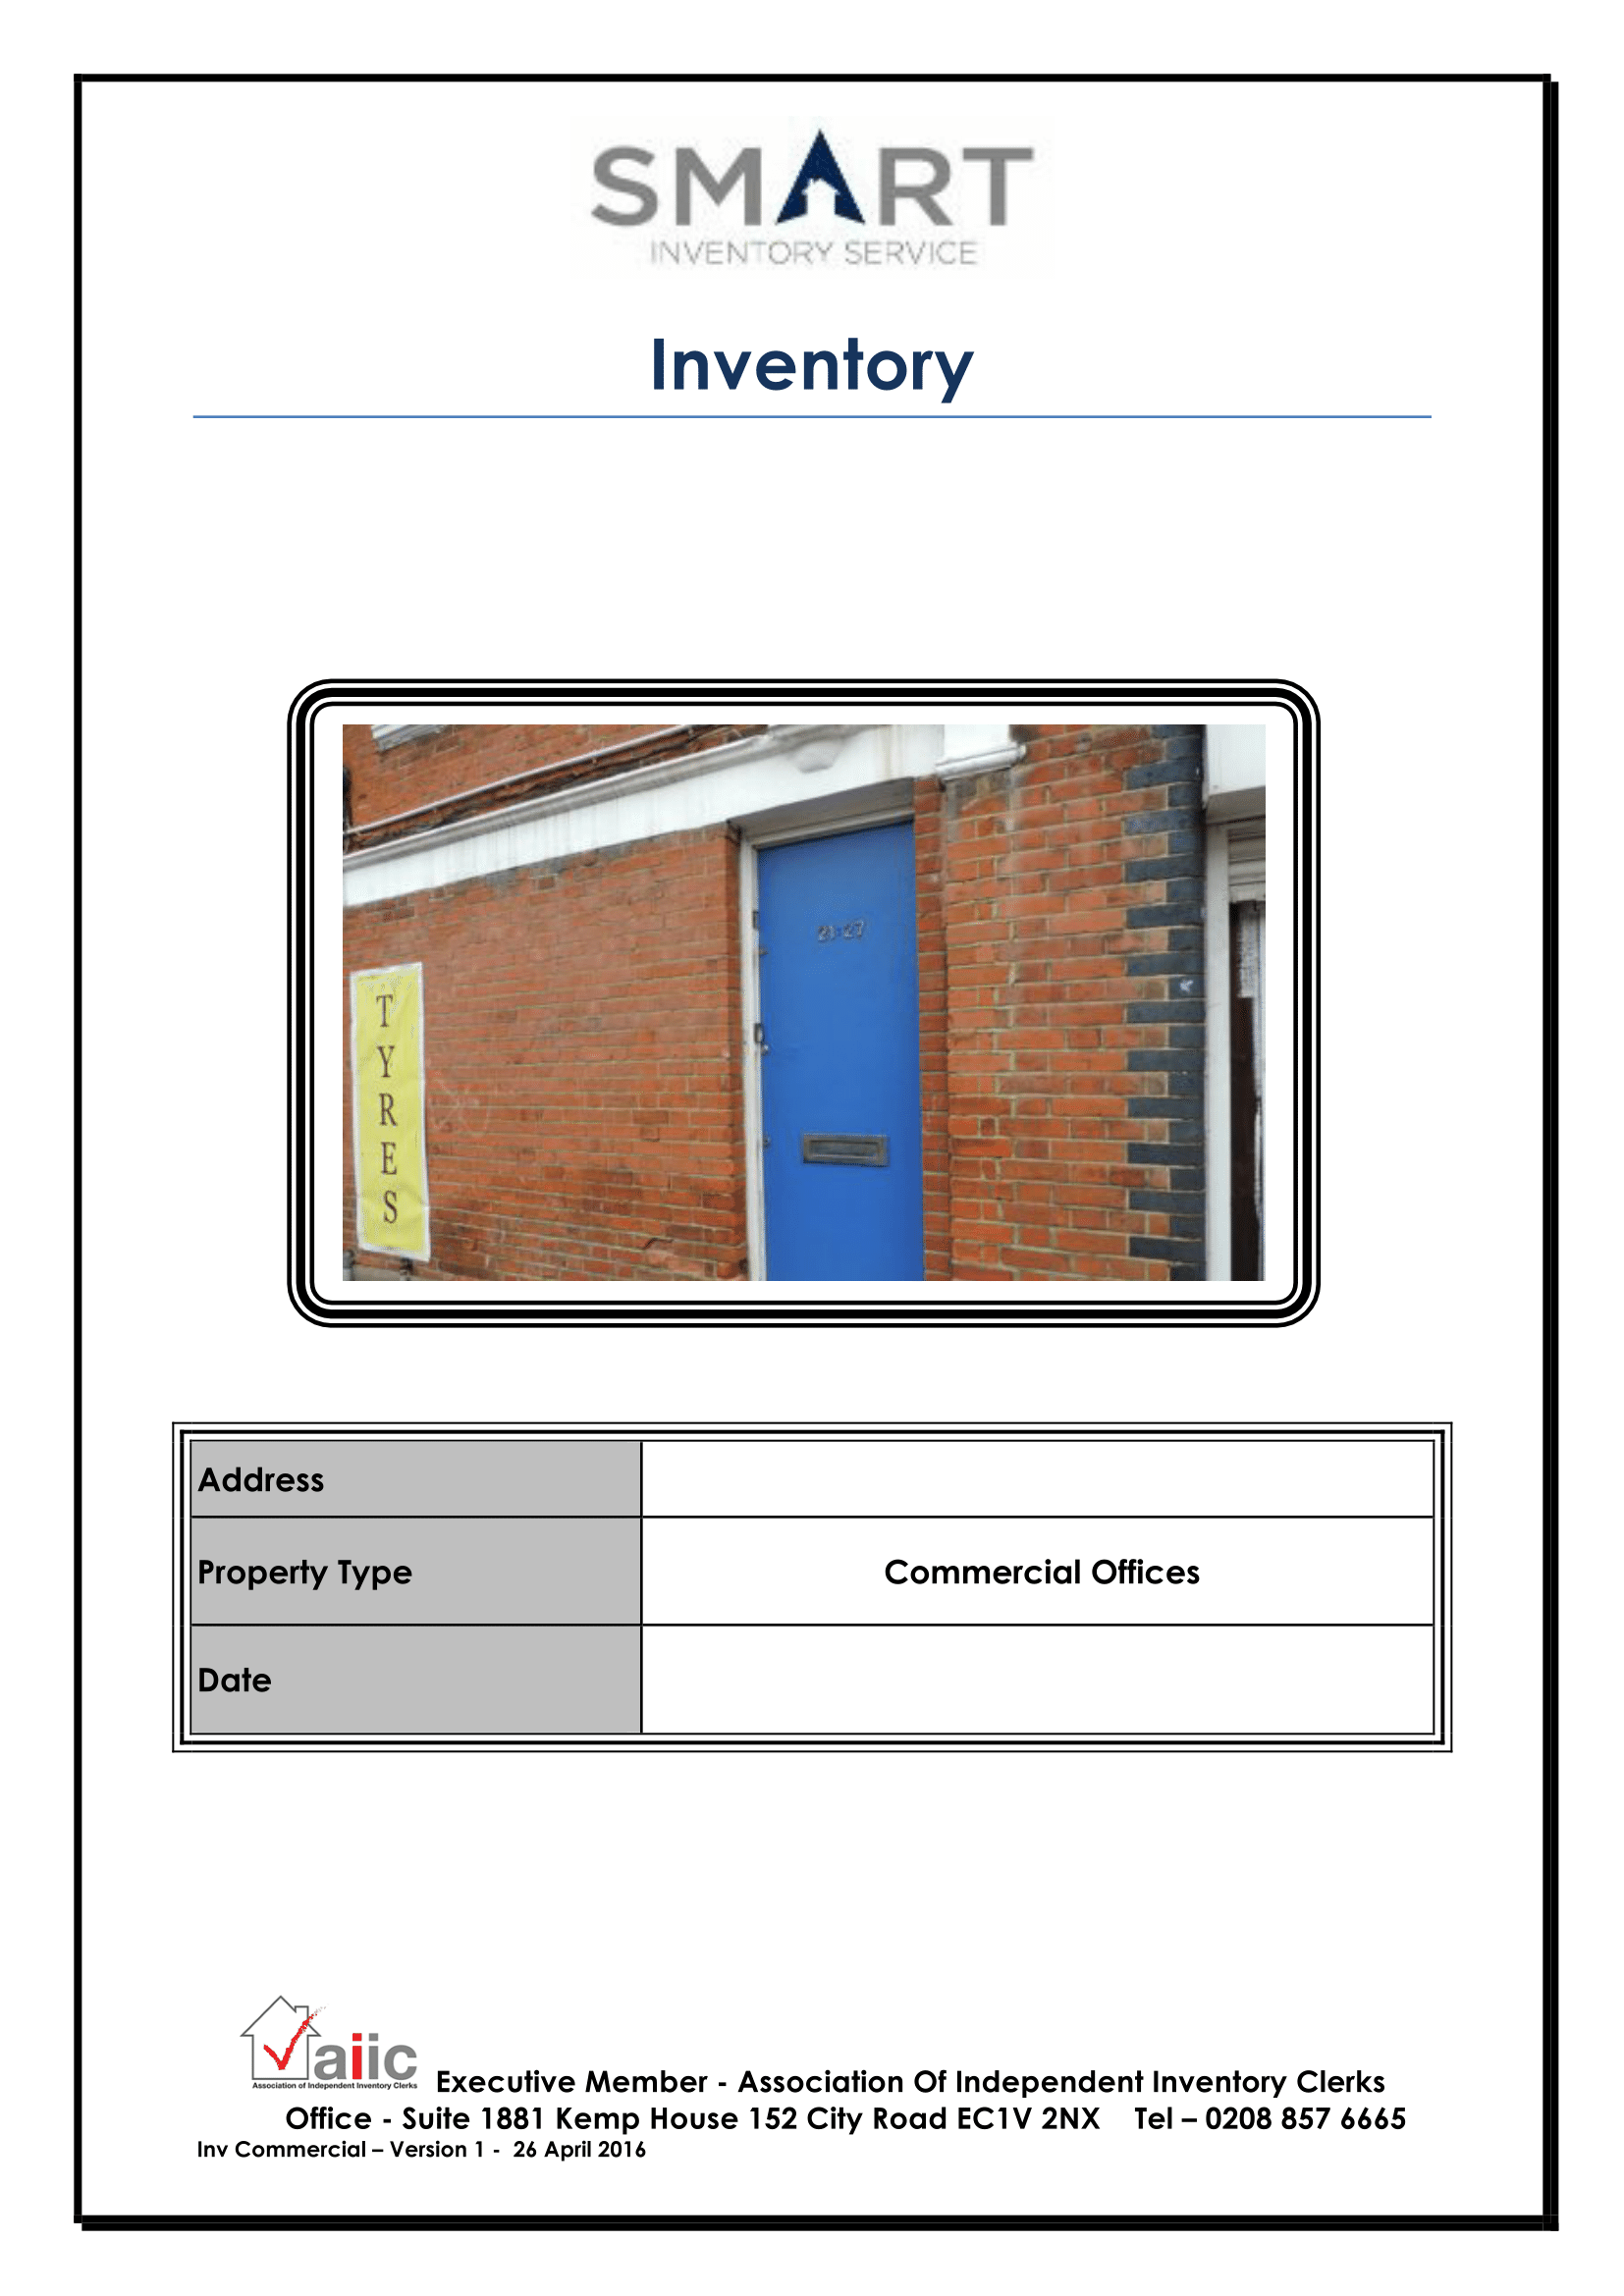 Smart Inventory Commercial Report Image